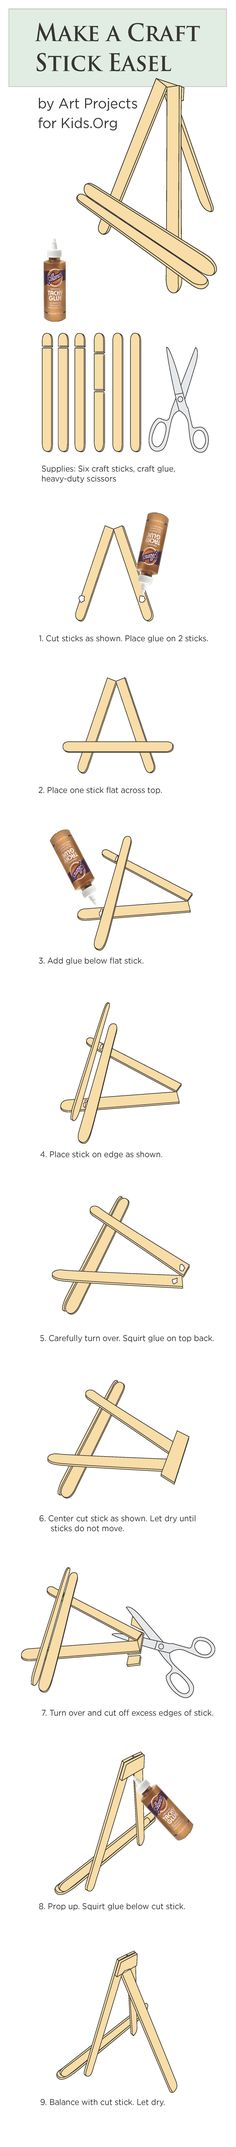 Craft Stick Easel Tutorial | Art Projects for Kids